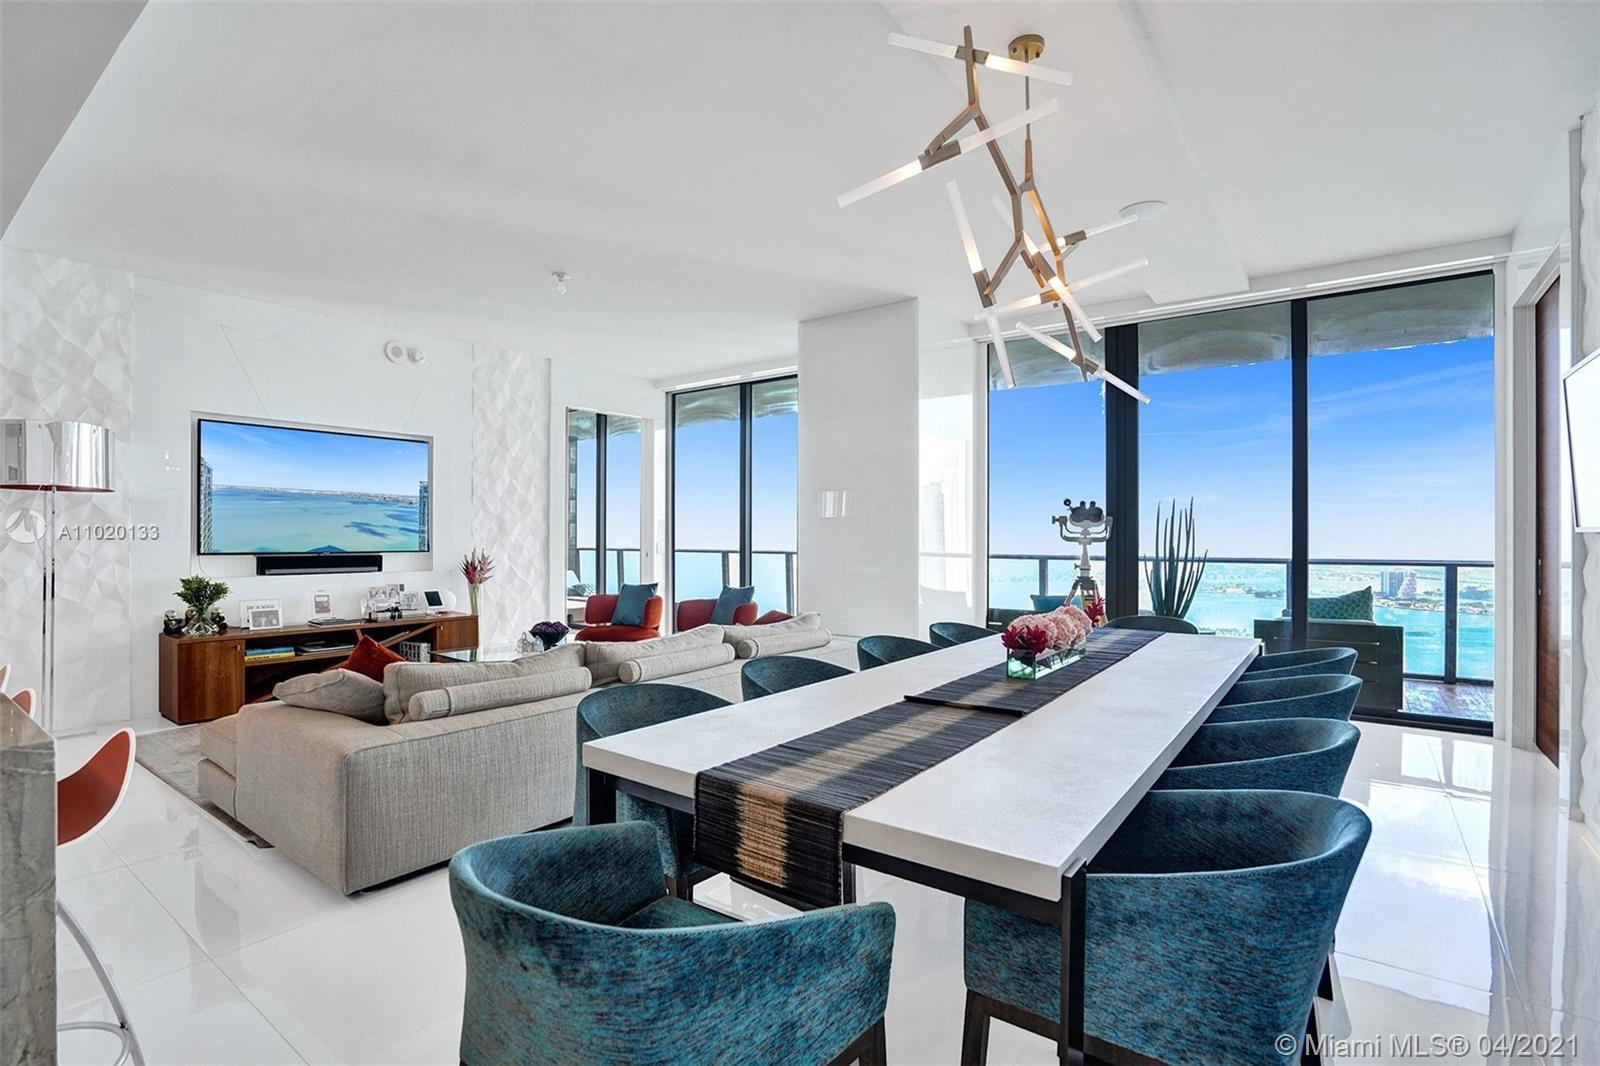 Stunning 52nd floor Penthouse. Incredible views of Bay, Ocean, Downtown skyline, Miami Beach & more.